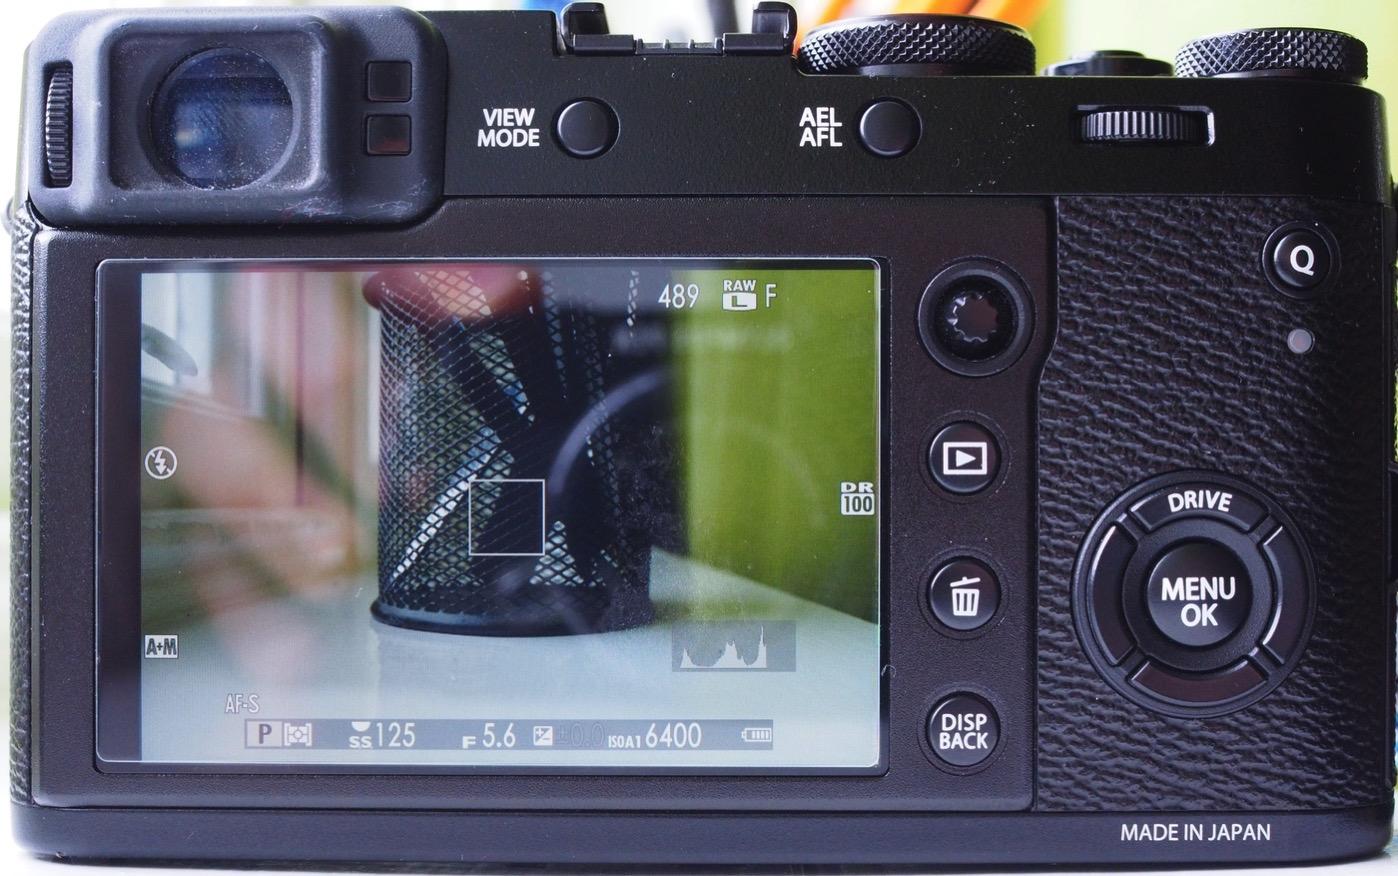 kirkville tips for using auto and manual focus on the fujifilm rh kirkville com fuji x100 video manual focus Fuji X100 Camera